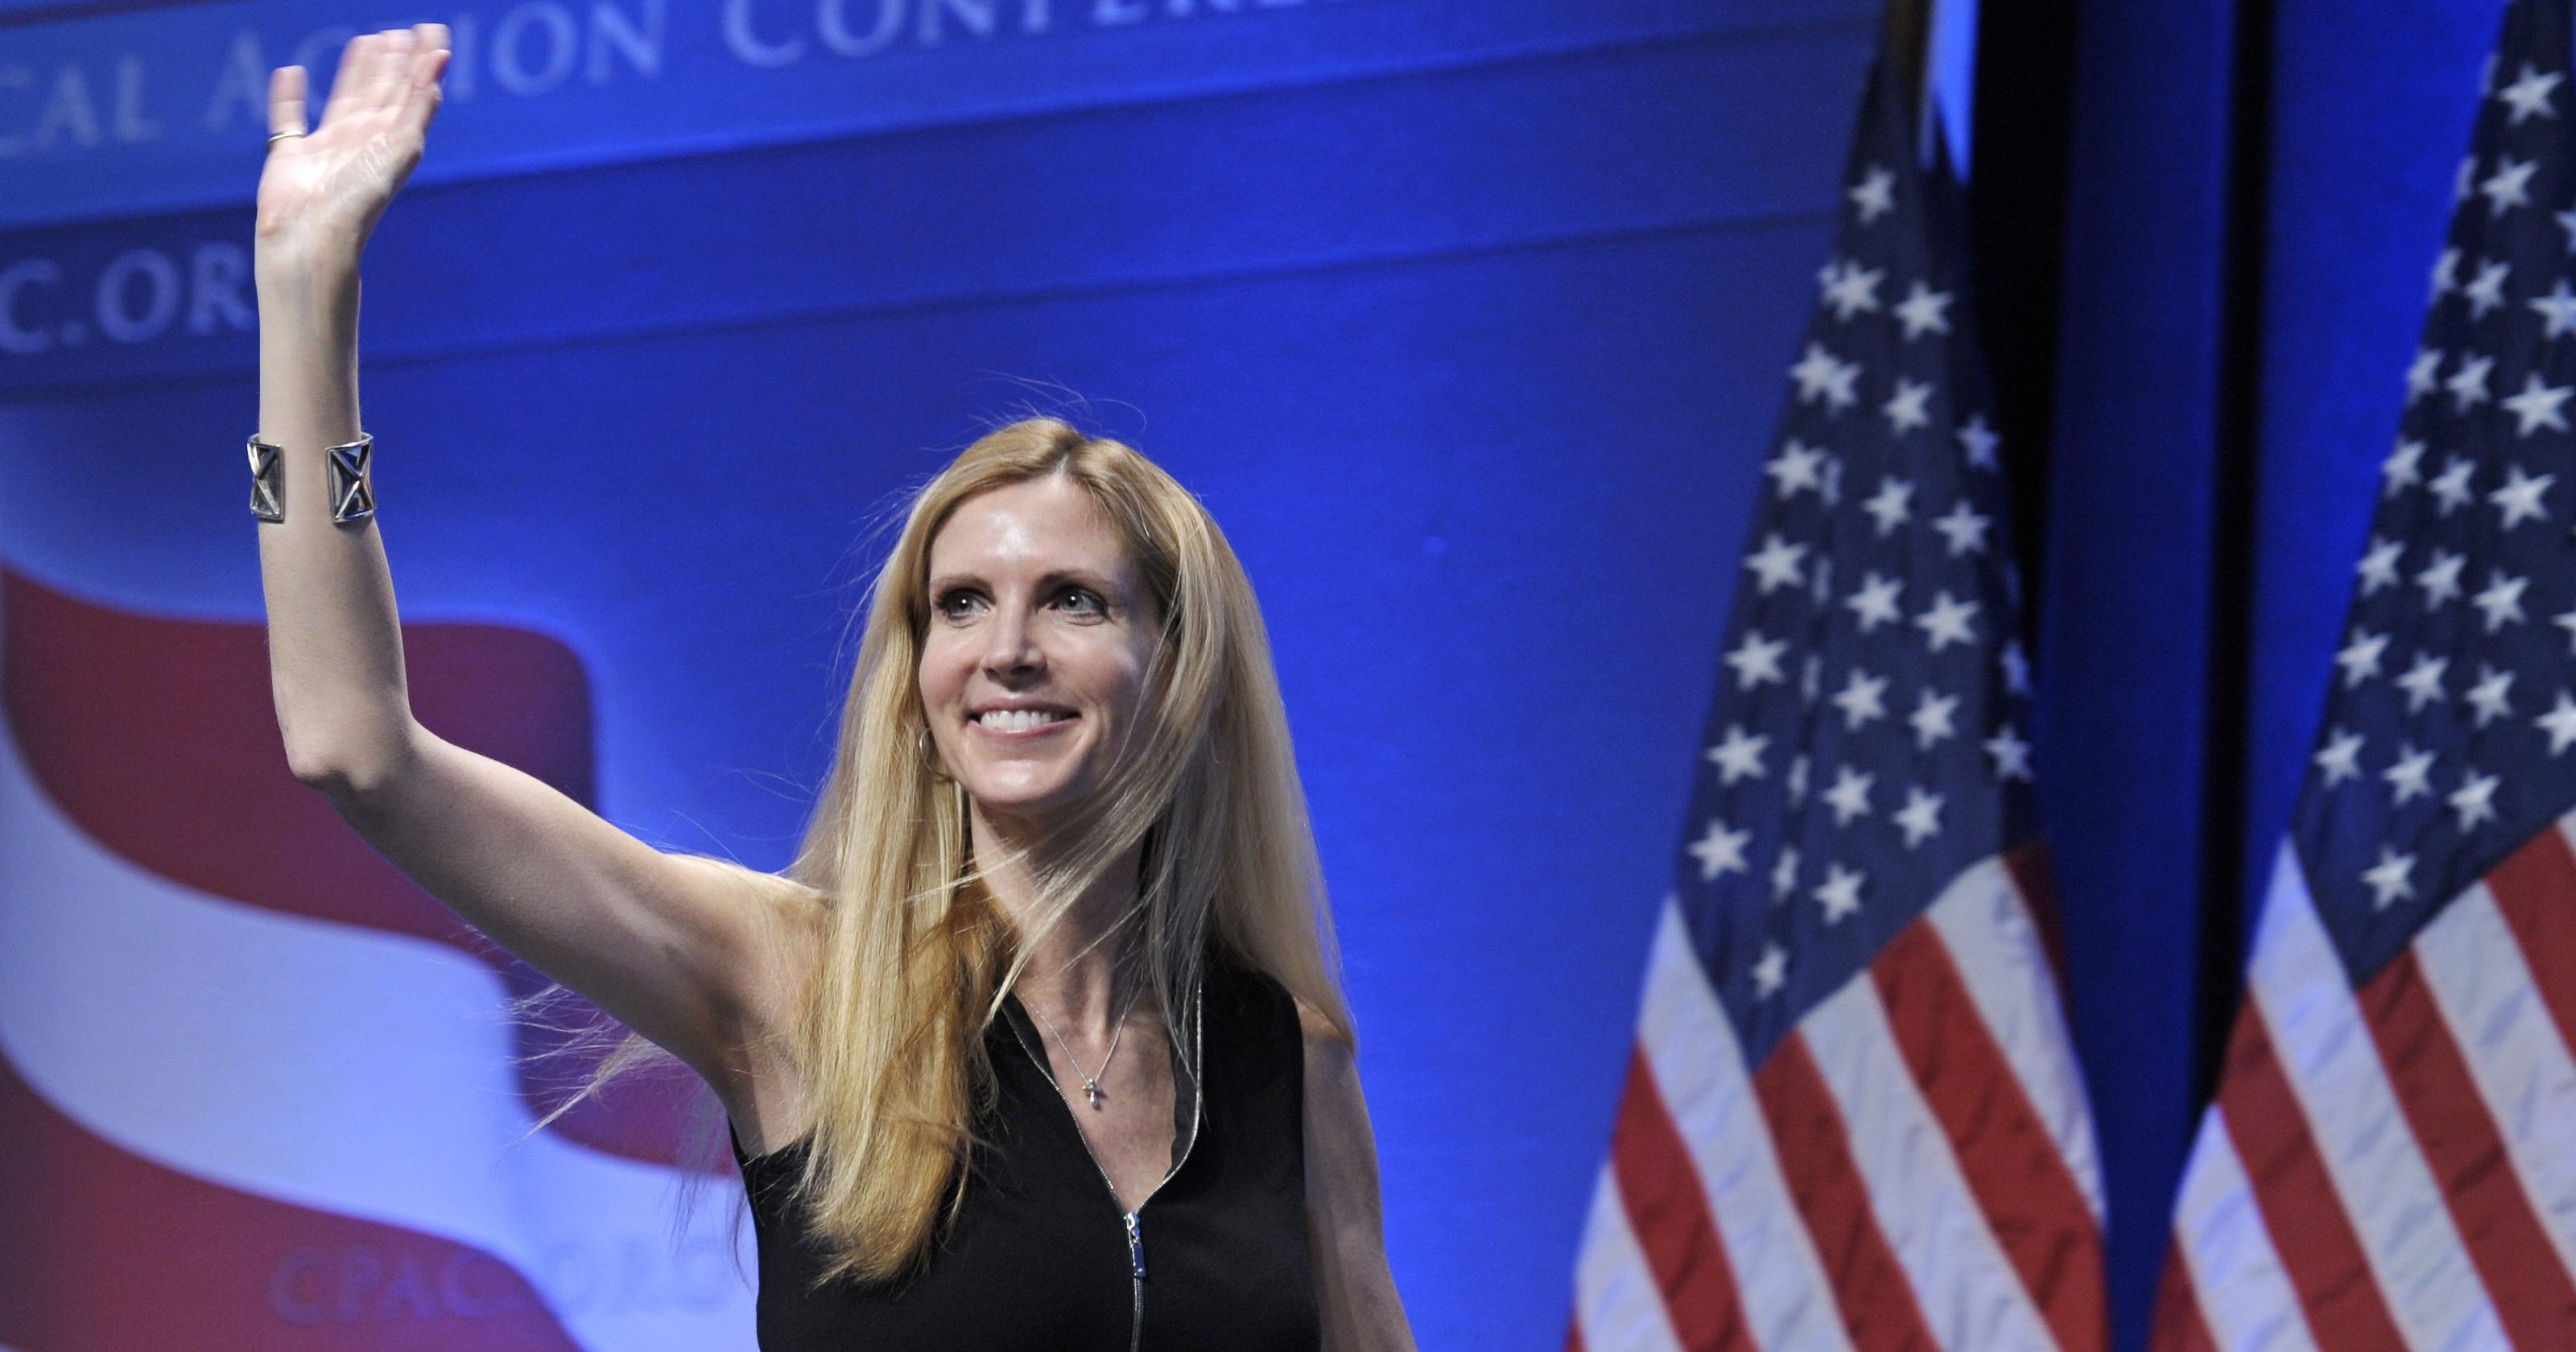 Ann Coulter after Trump's order: 'The only national emergency is that our president is an idiot'